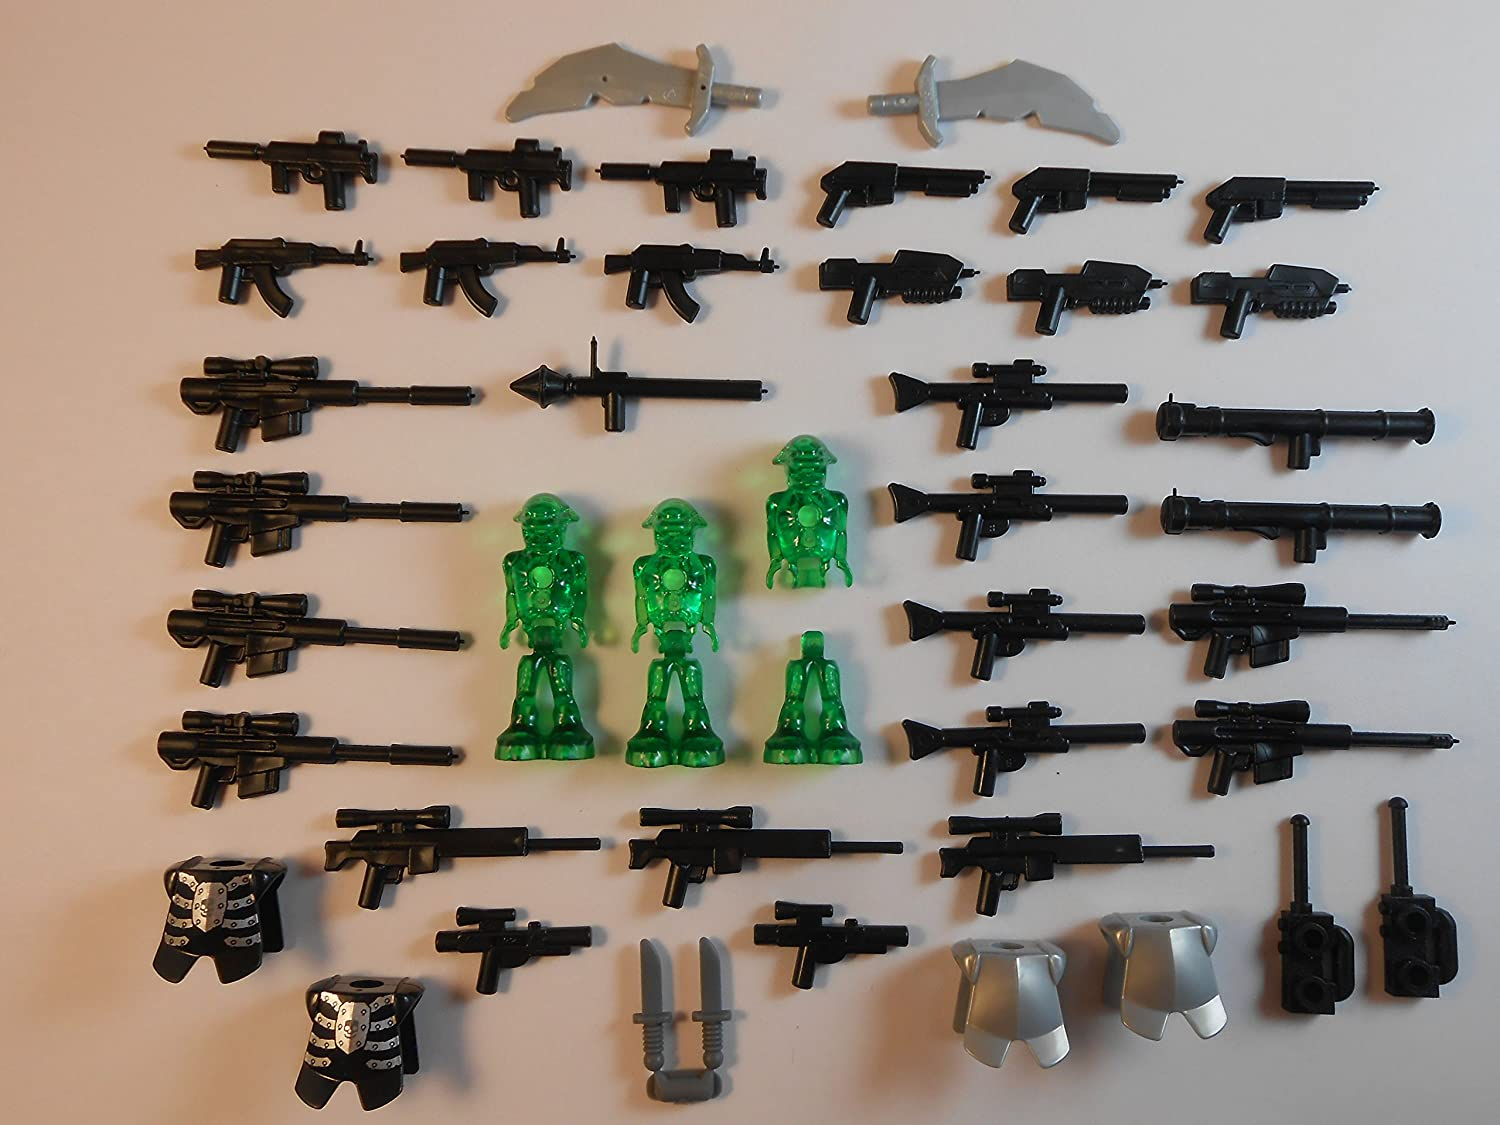 42 Items. Guns and Lego Aliens. Accessories Armor Swords New!